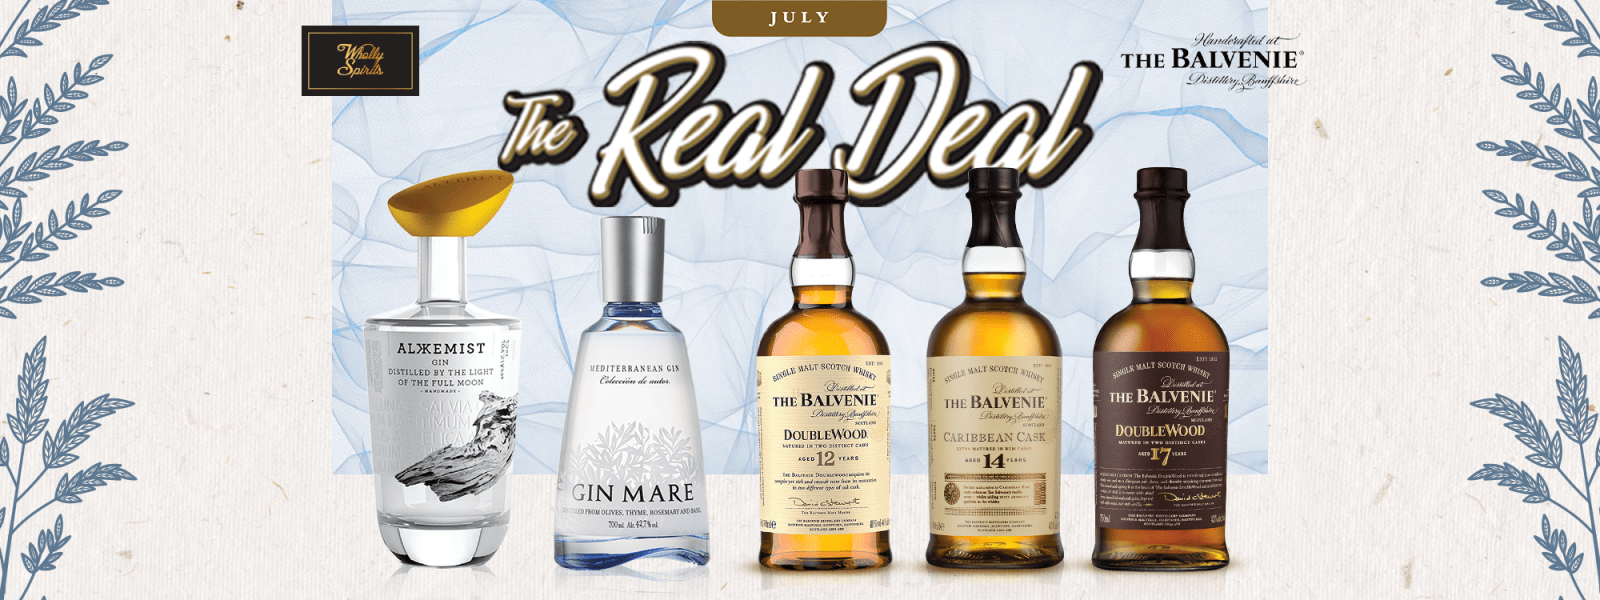 The Balvenie Returns in July Real Deals, With Alkkemist Gin and Gin Mare!